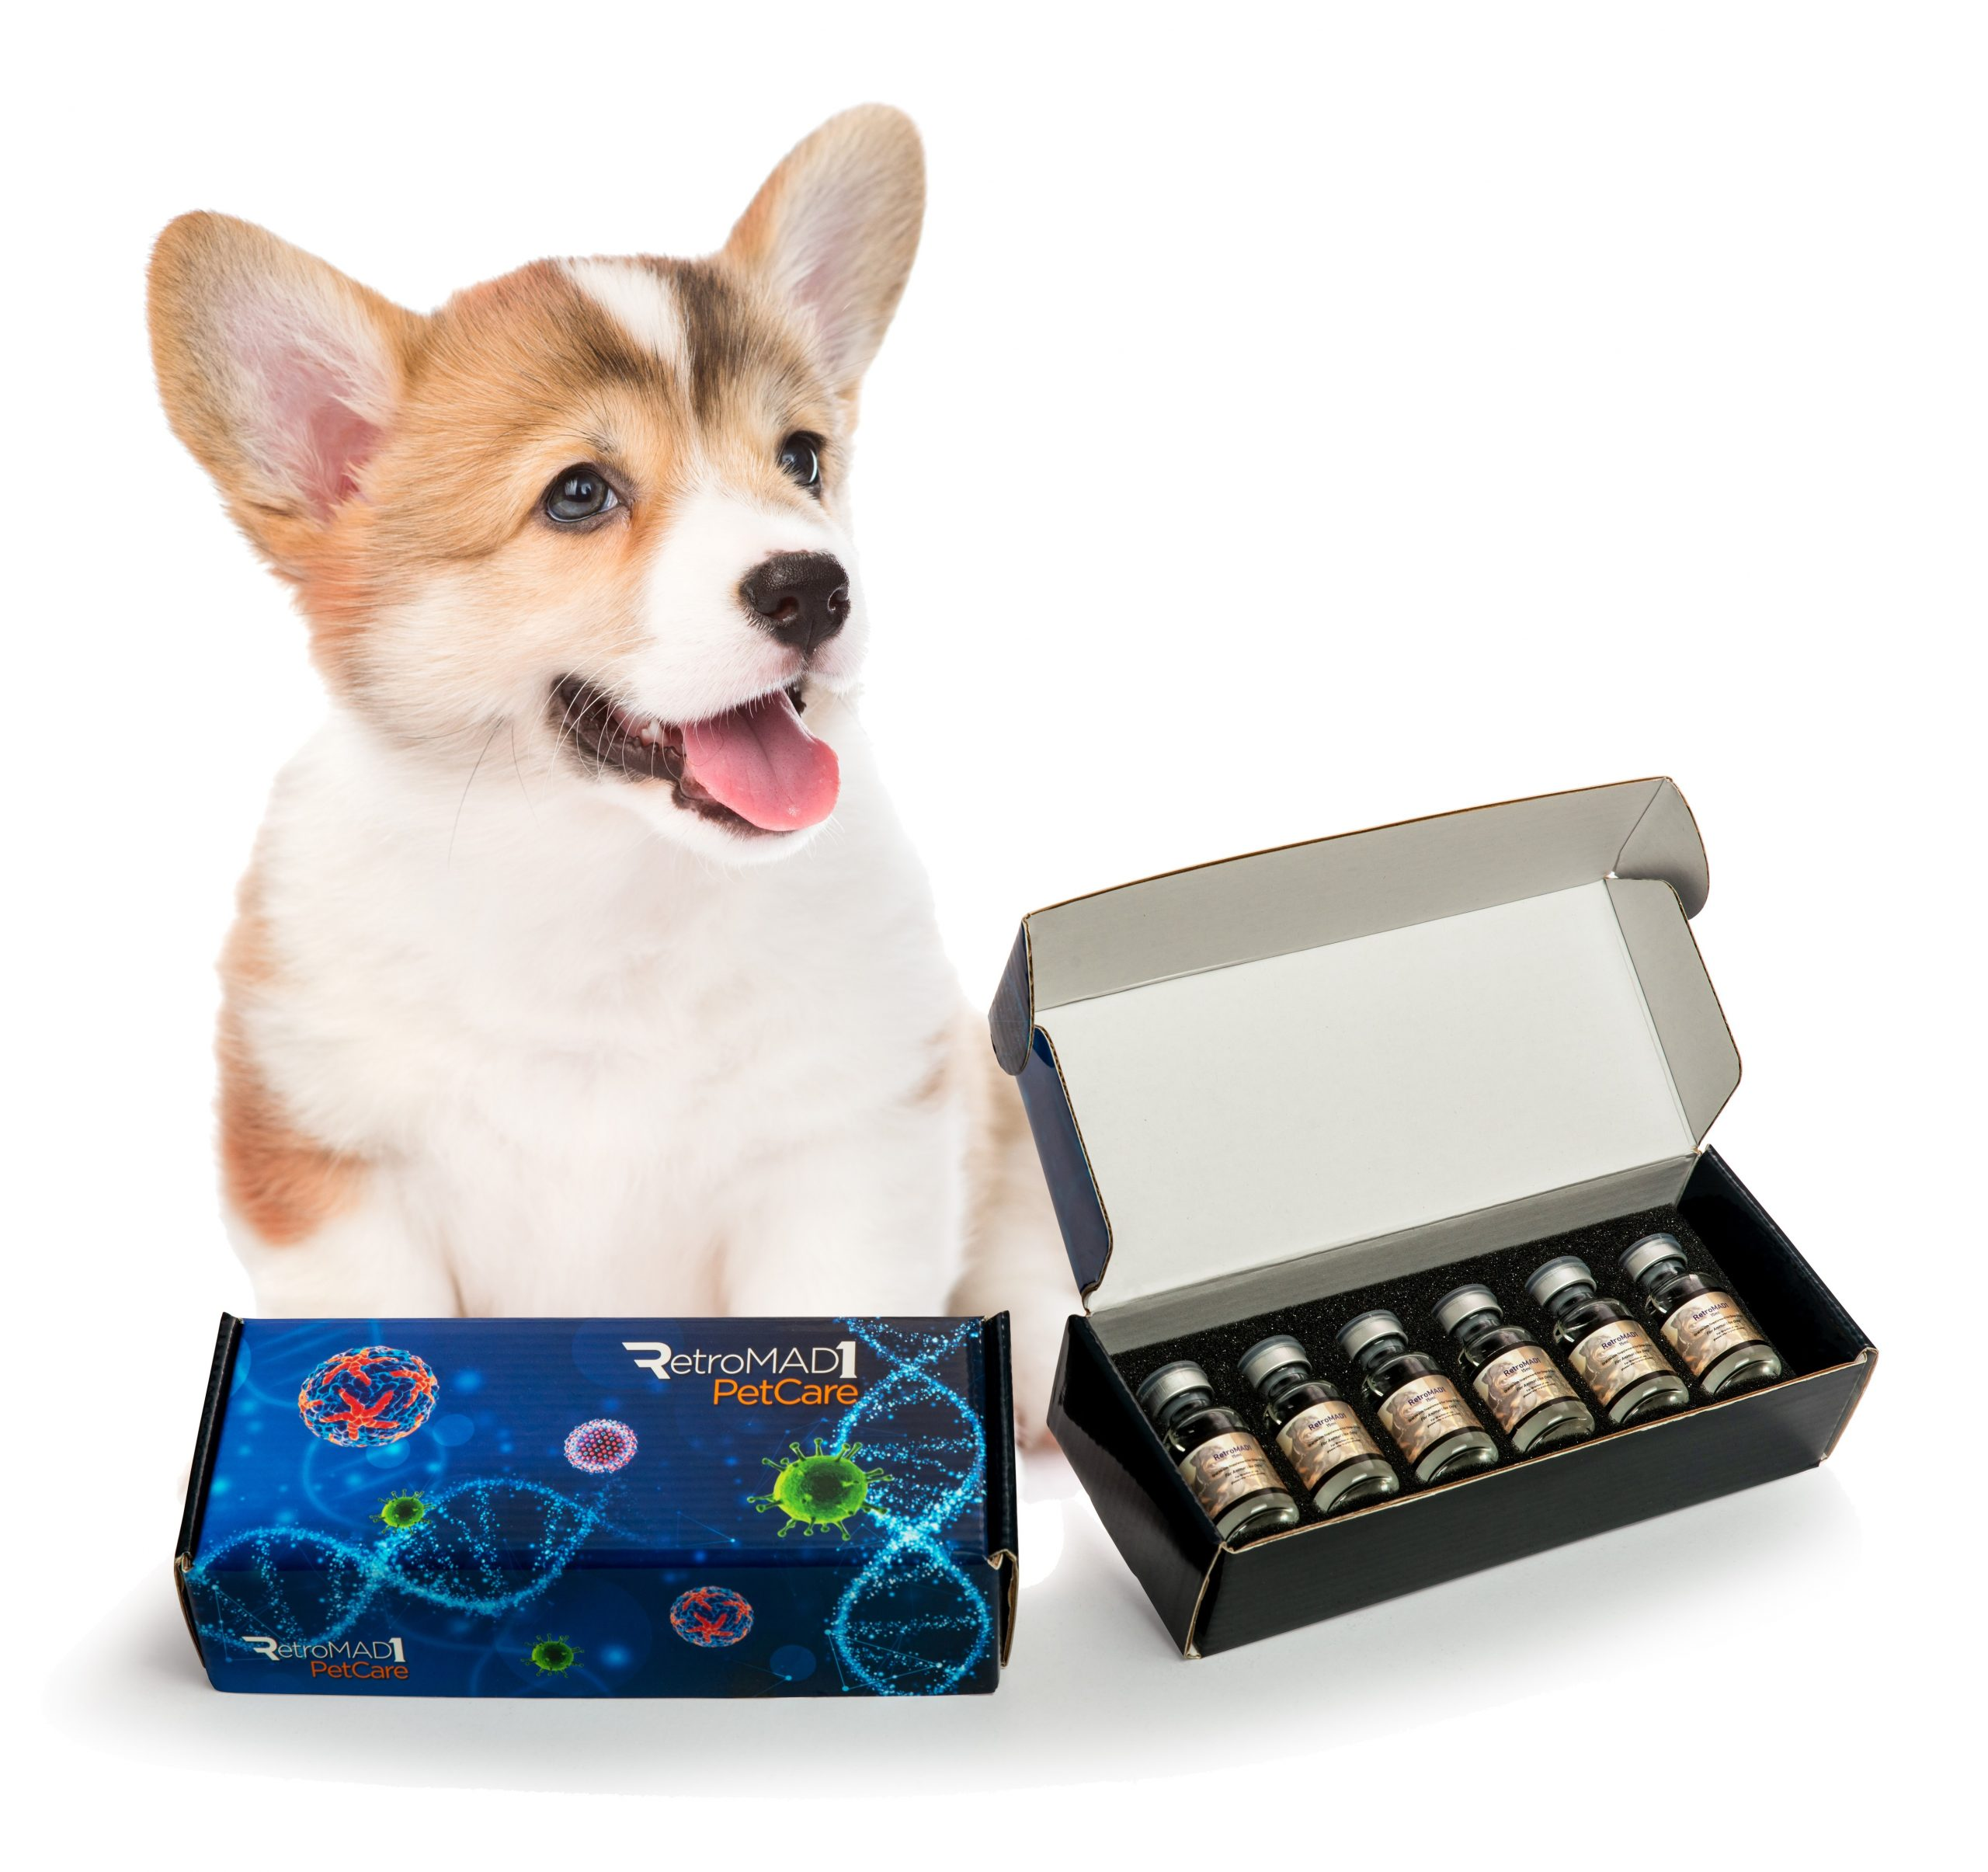 RetroMAD1 box for 15mL (with dog image)